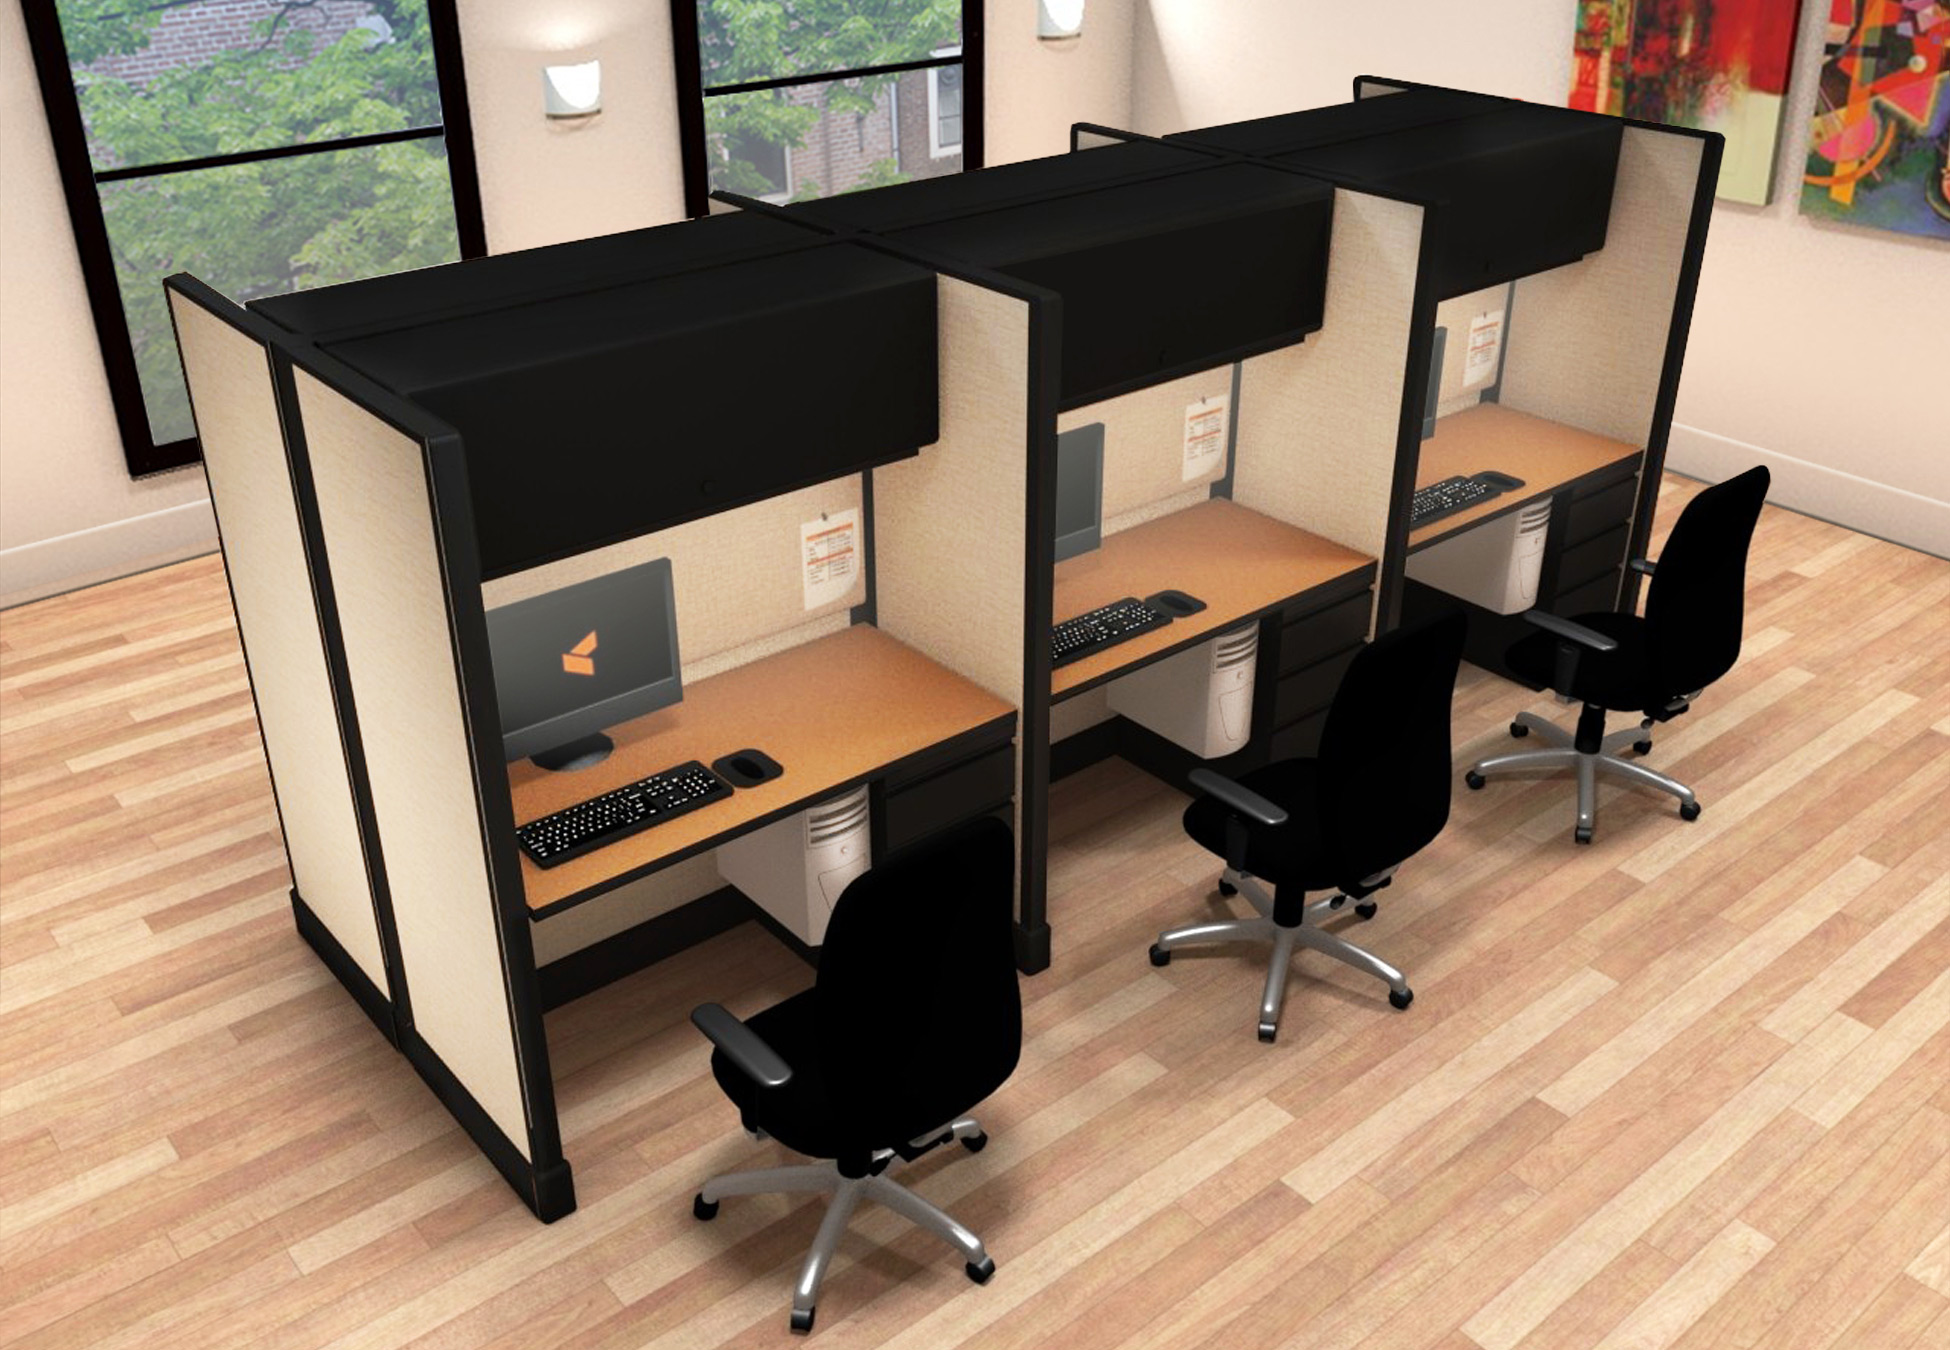 2x4 Small Business Furniture - 6 Pack Cluster